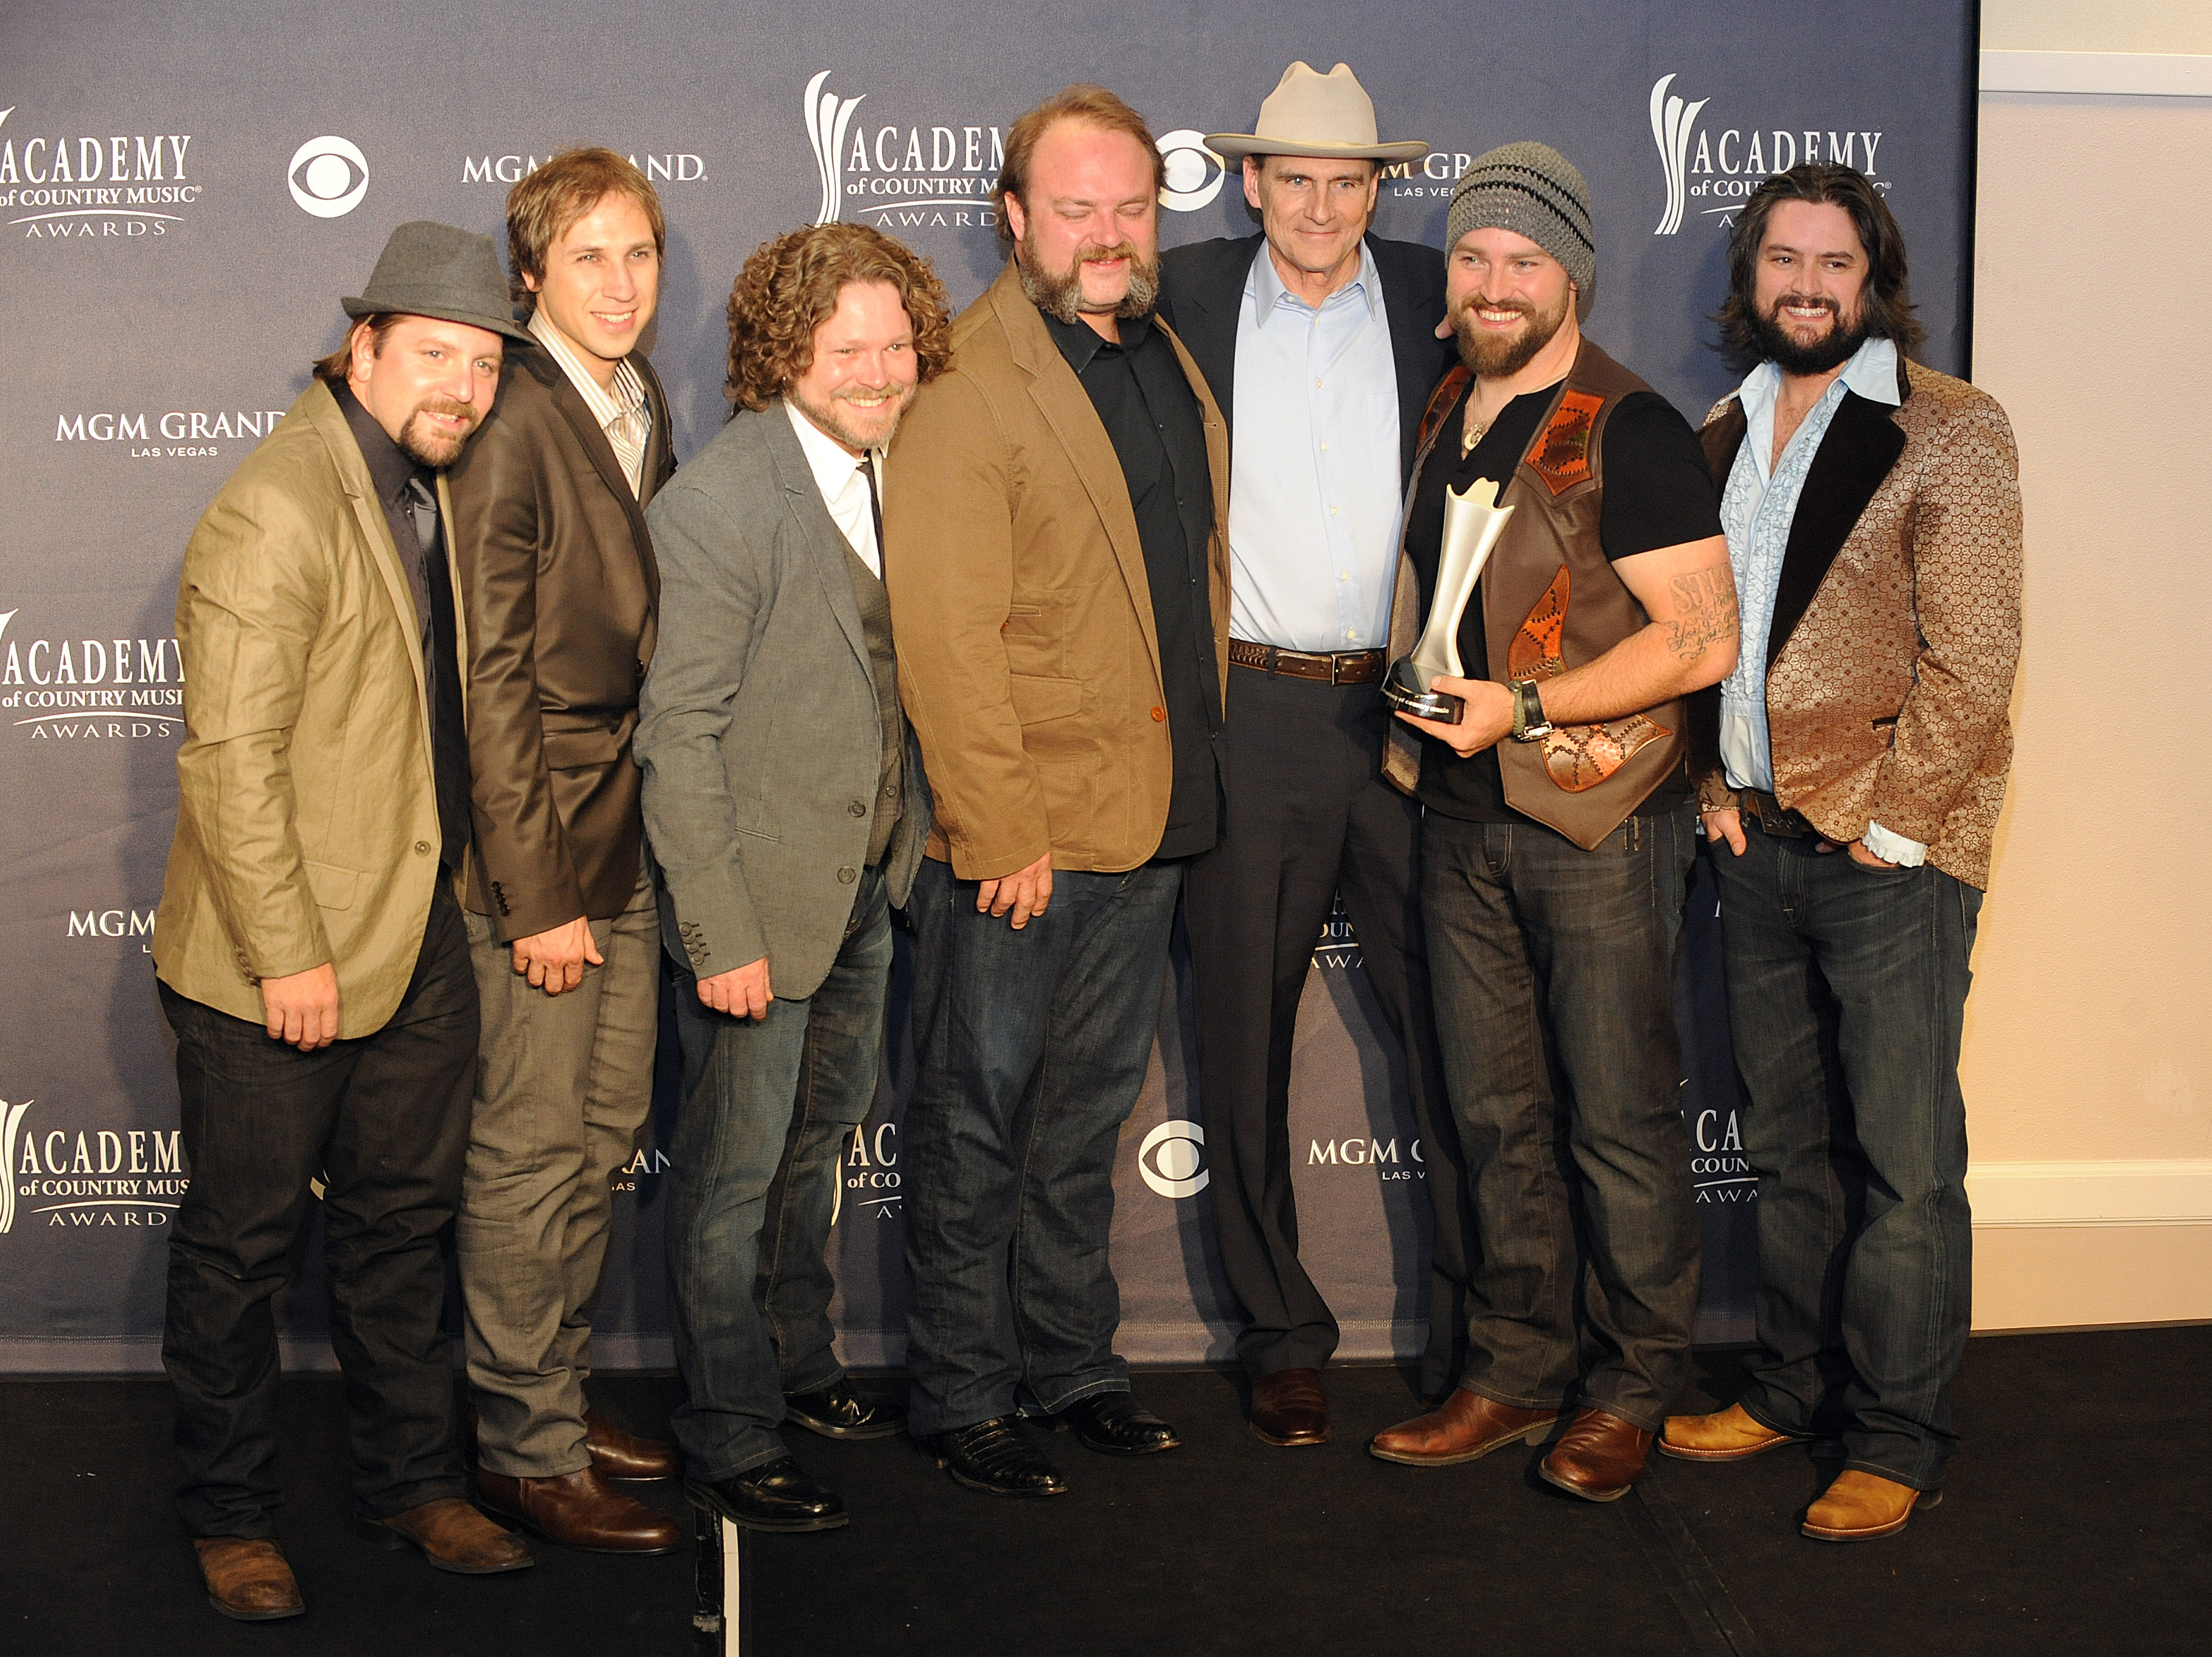 2. Zac Brown Band